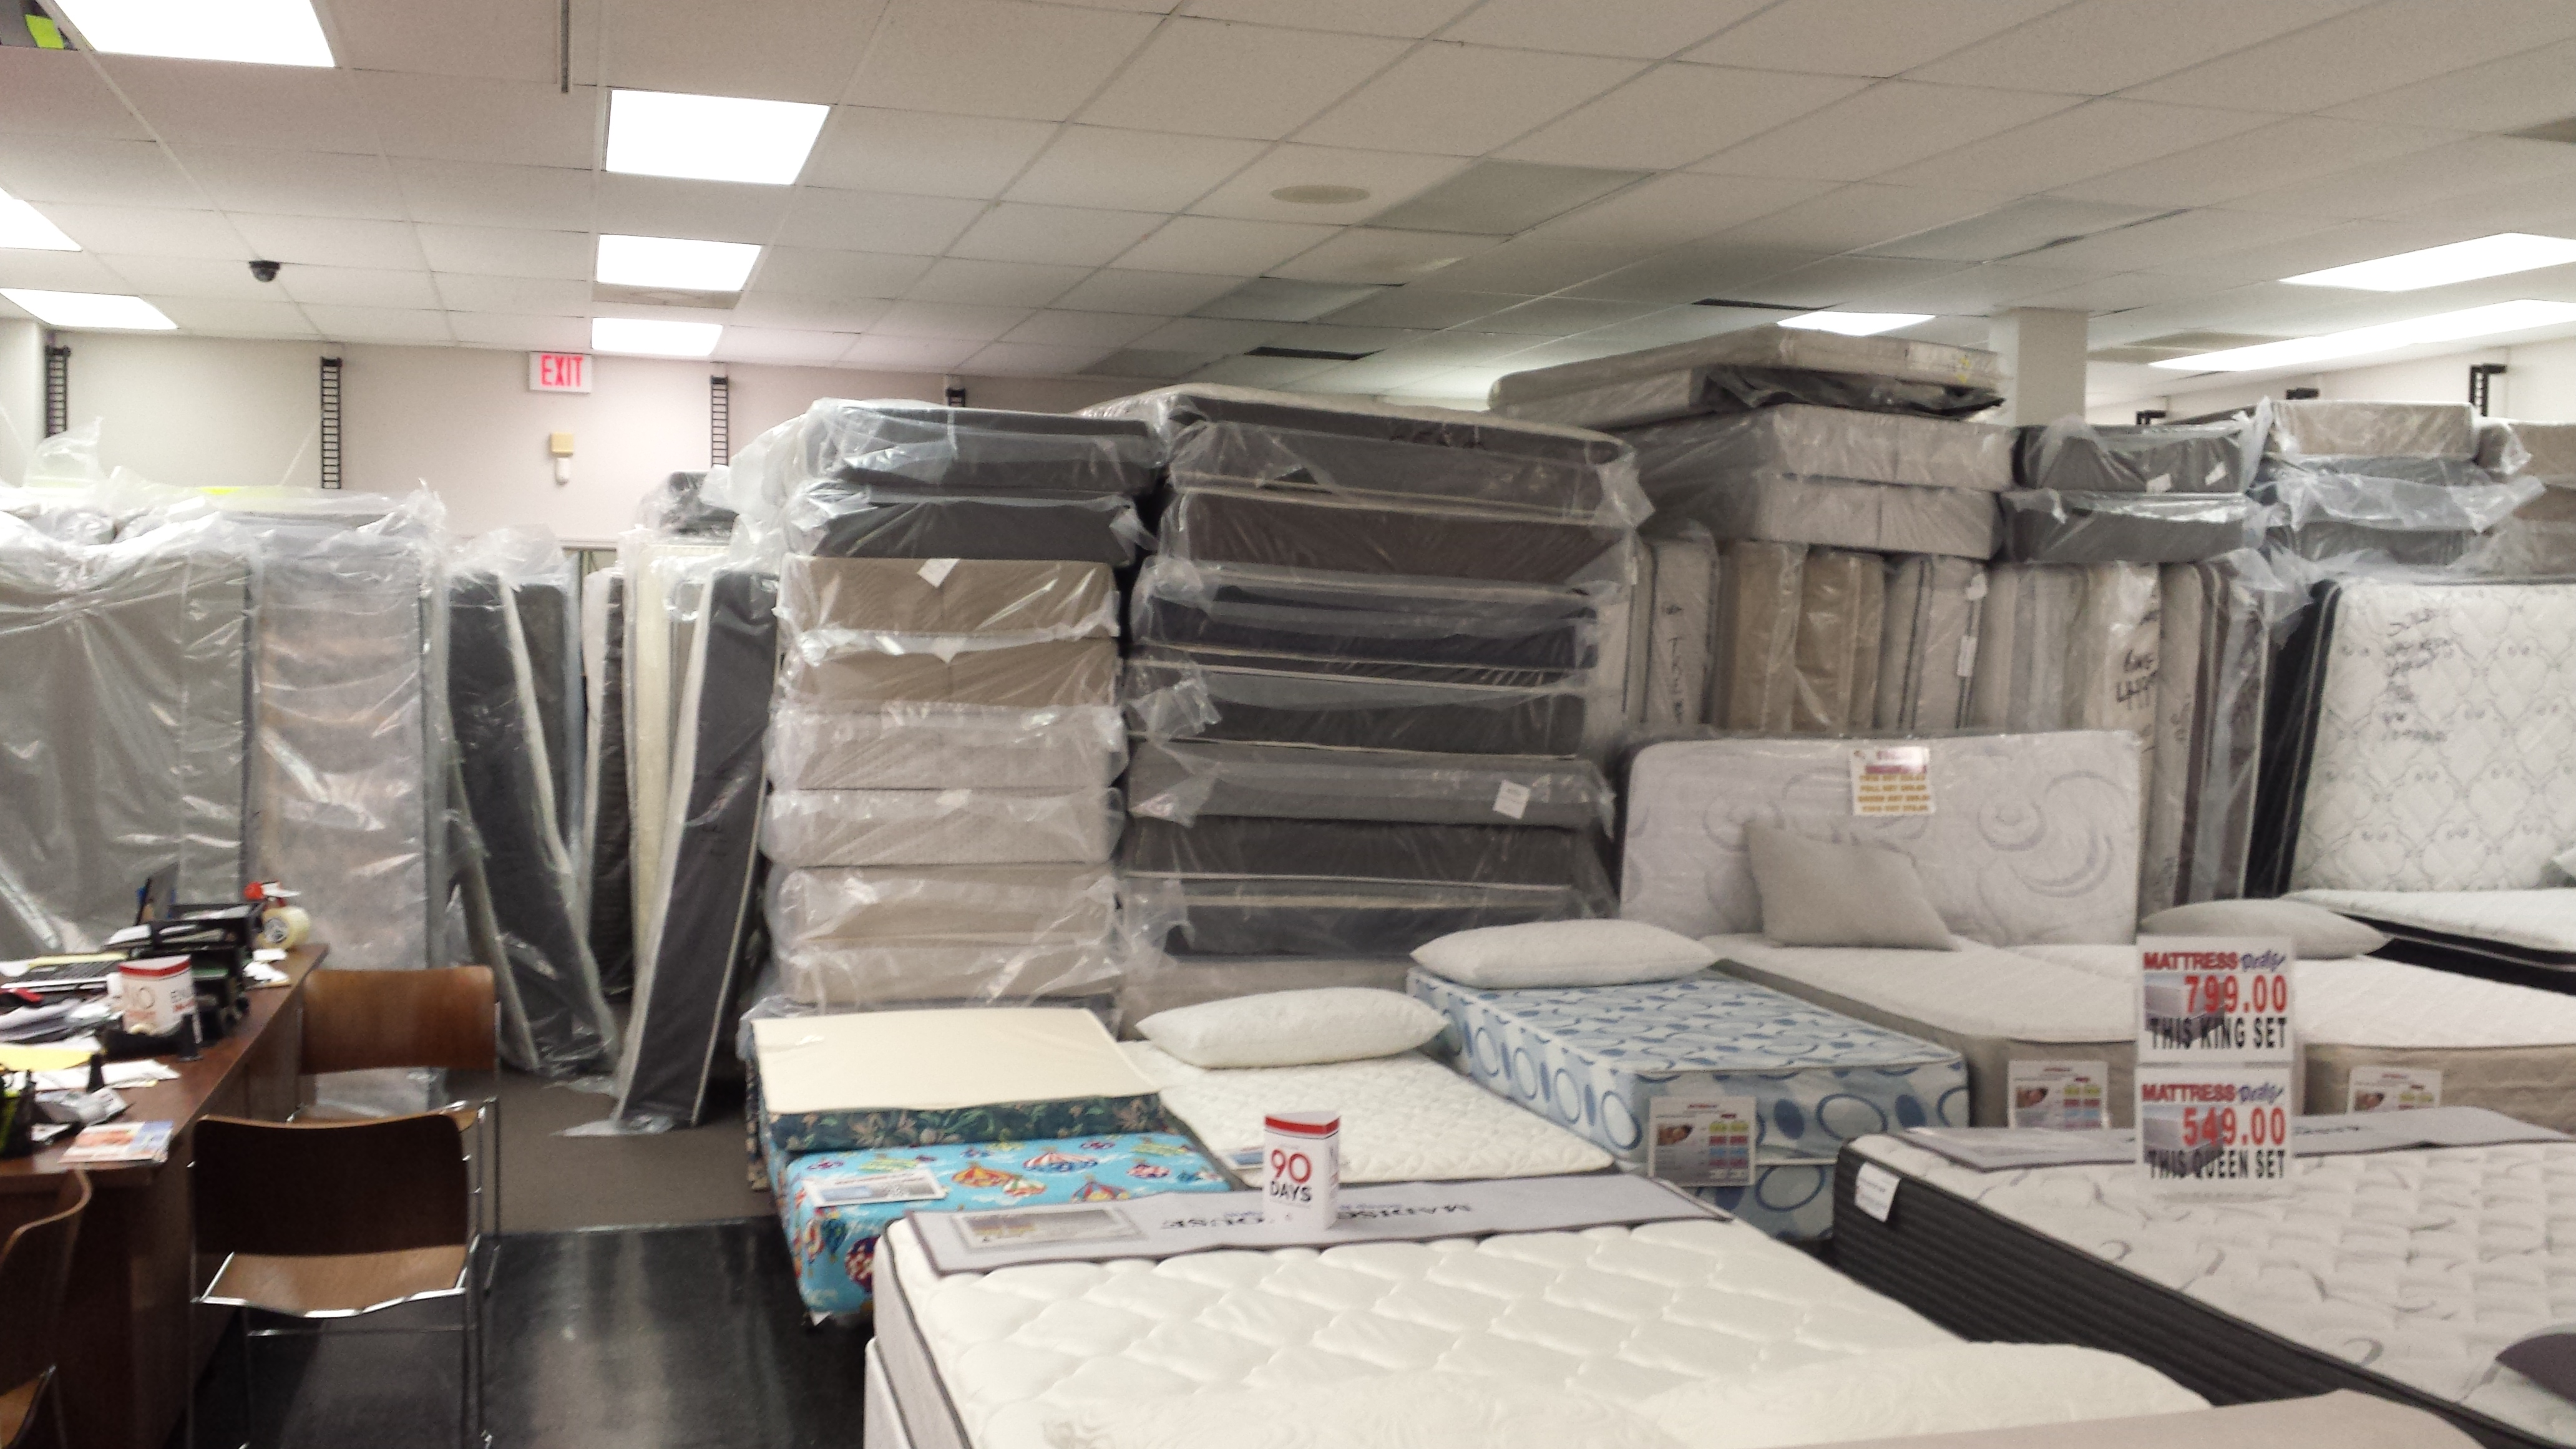 Mattress Deals image 40